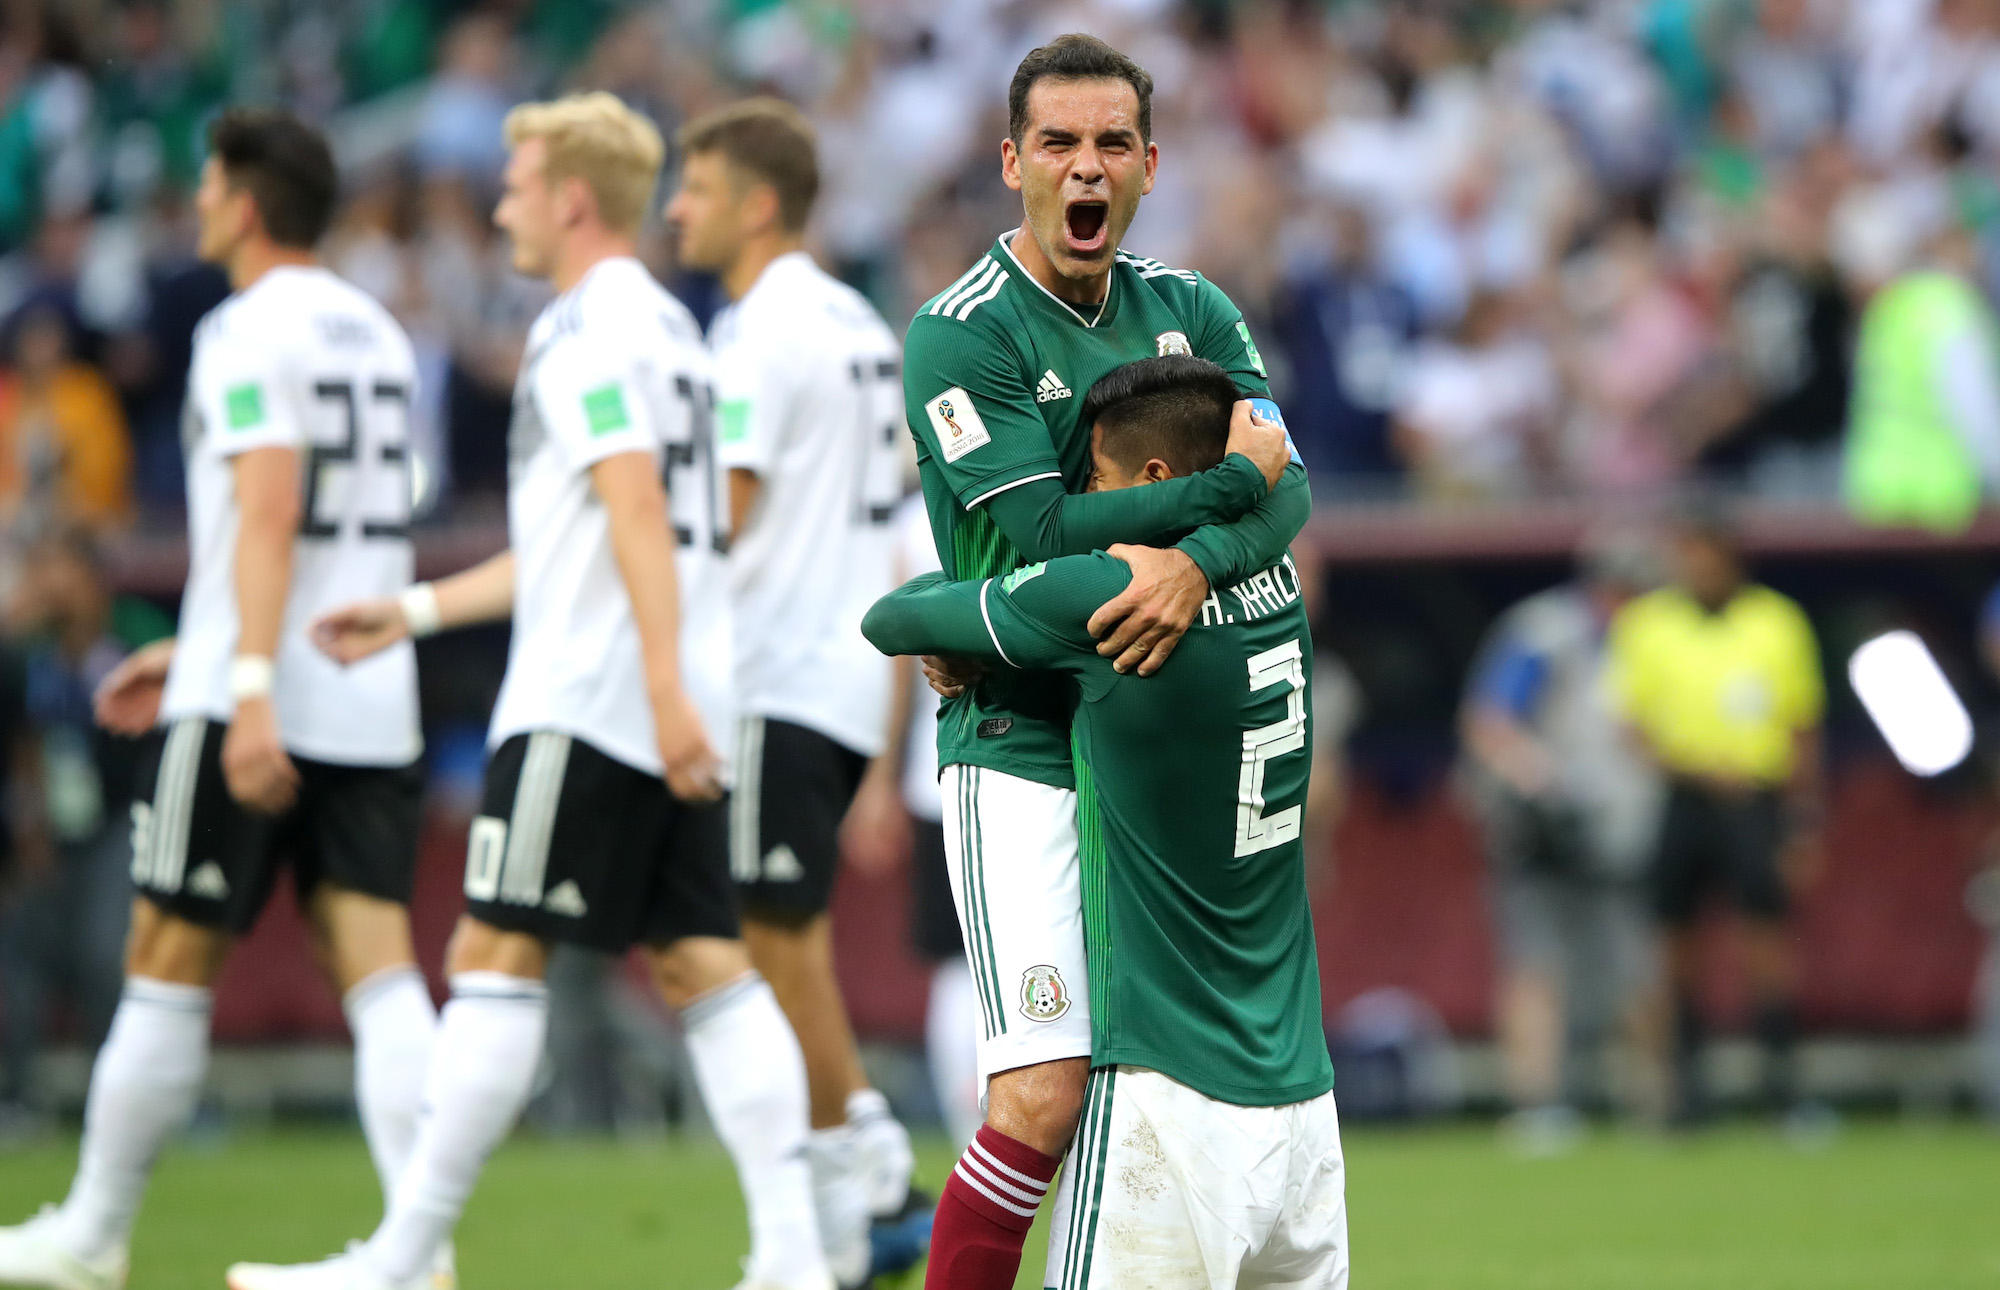 0bcd3a0e071 Mexico shocks reigning World Cup champs Germany 1-0 - CBS News